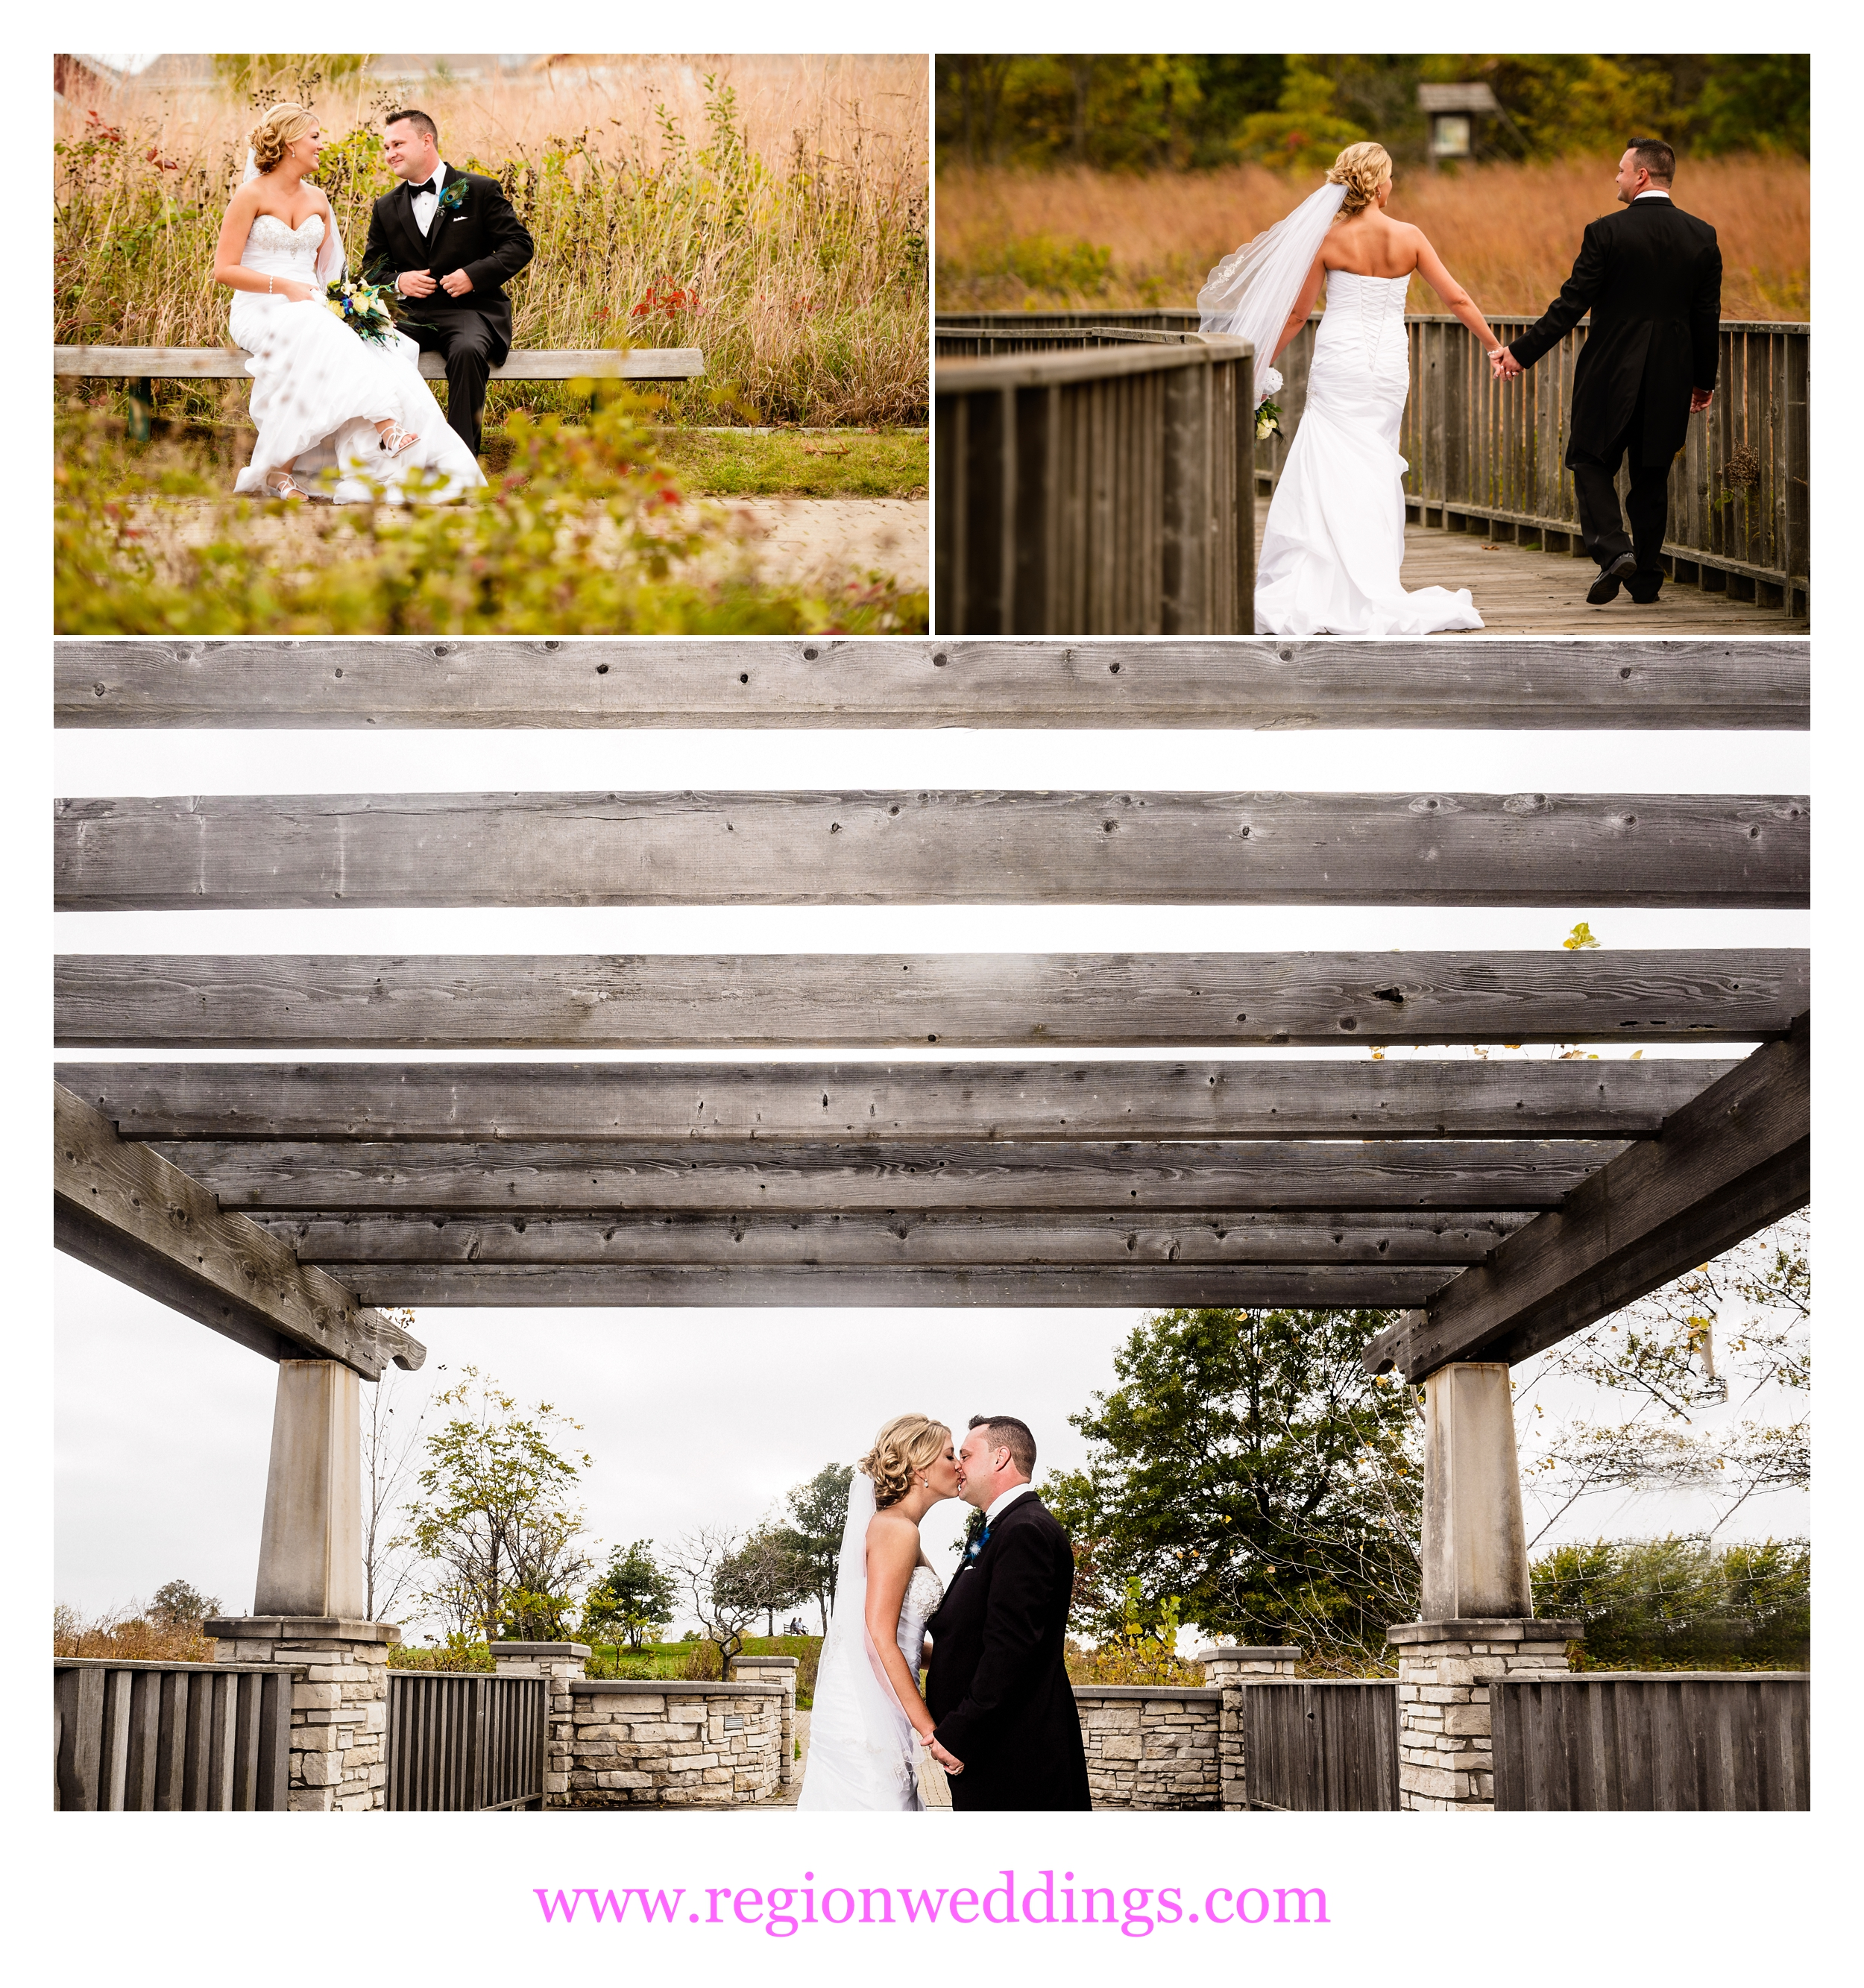 Wedding photos at Coffee Creek Nature Preserve in Chesterton, Indiana.